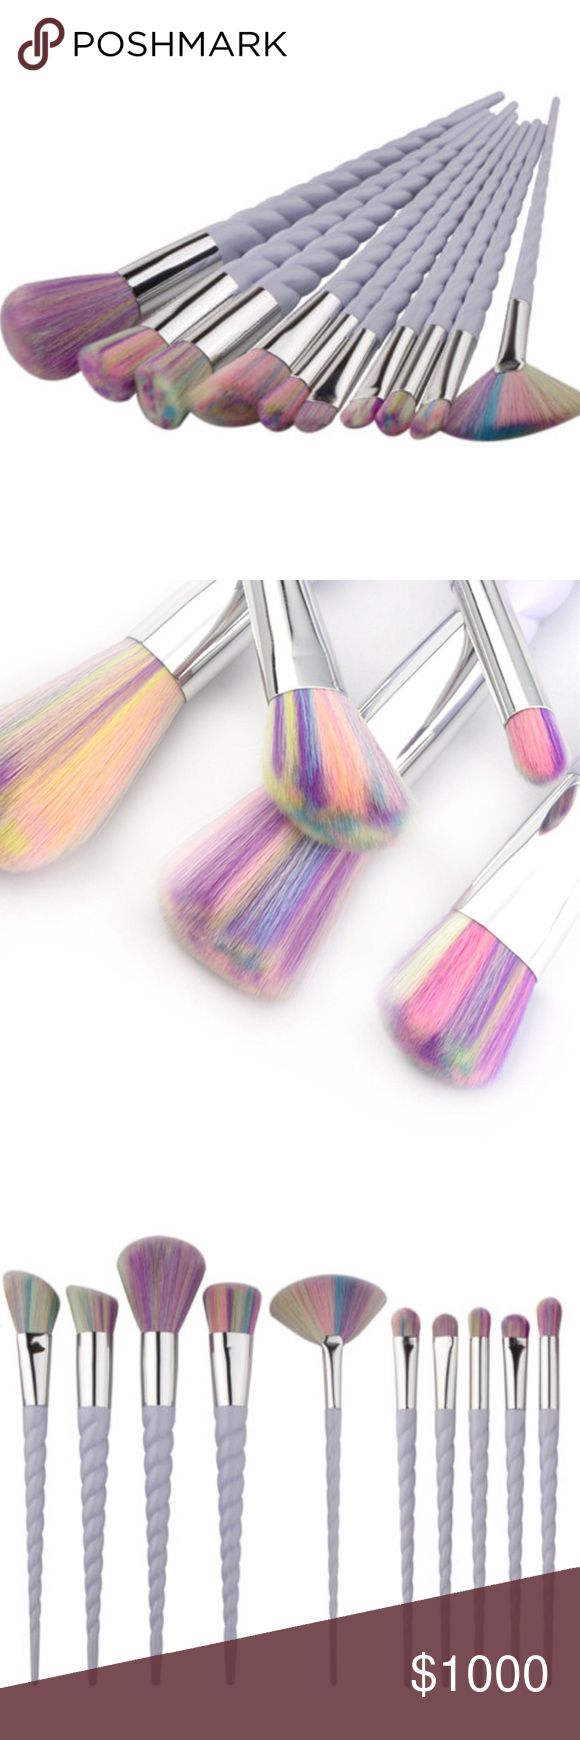 Coming soon! Unicorn makeup brush set Unicorn makeup brush set, 10 brushes per set. Multicolor brush with unicorn shape light purple handle. Great quality. Angled brush, foundation brush, highlighter fan brush, eyeshadow brush, contour brush. Rainbow unicorn style set. Comment below and I will tag you when they arrive :) these are no brand but work well with MAC cosmetics when paired with their makeup products. Price will be $50 approx when these arrive. $5 per brush MAC Cosmetics Makeup…